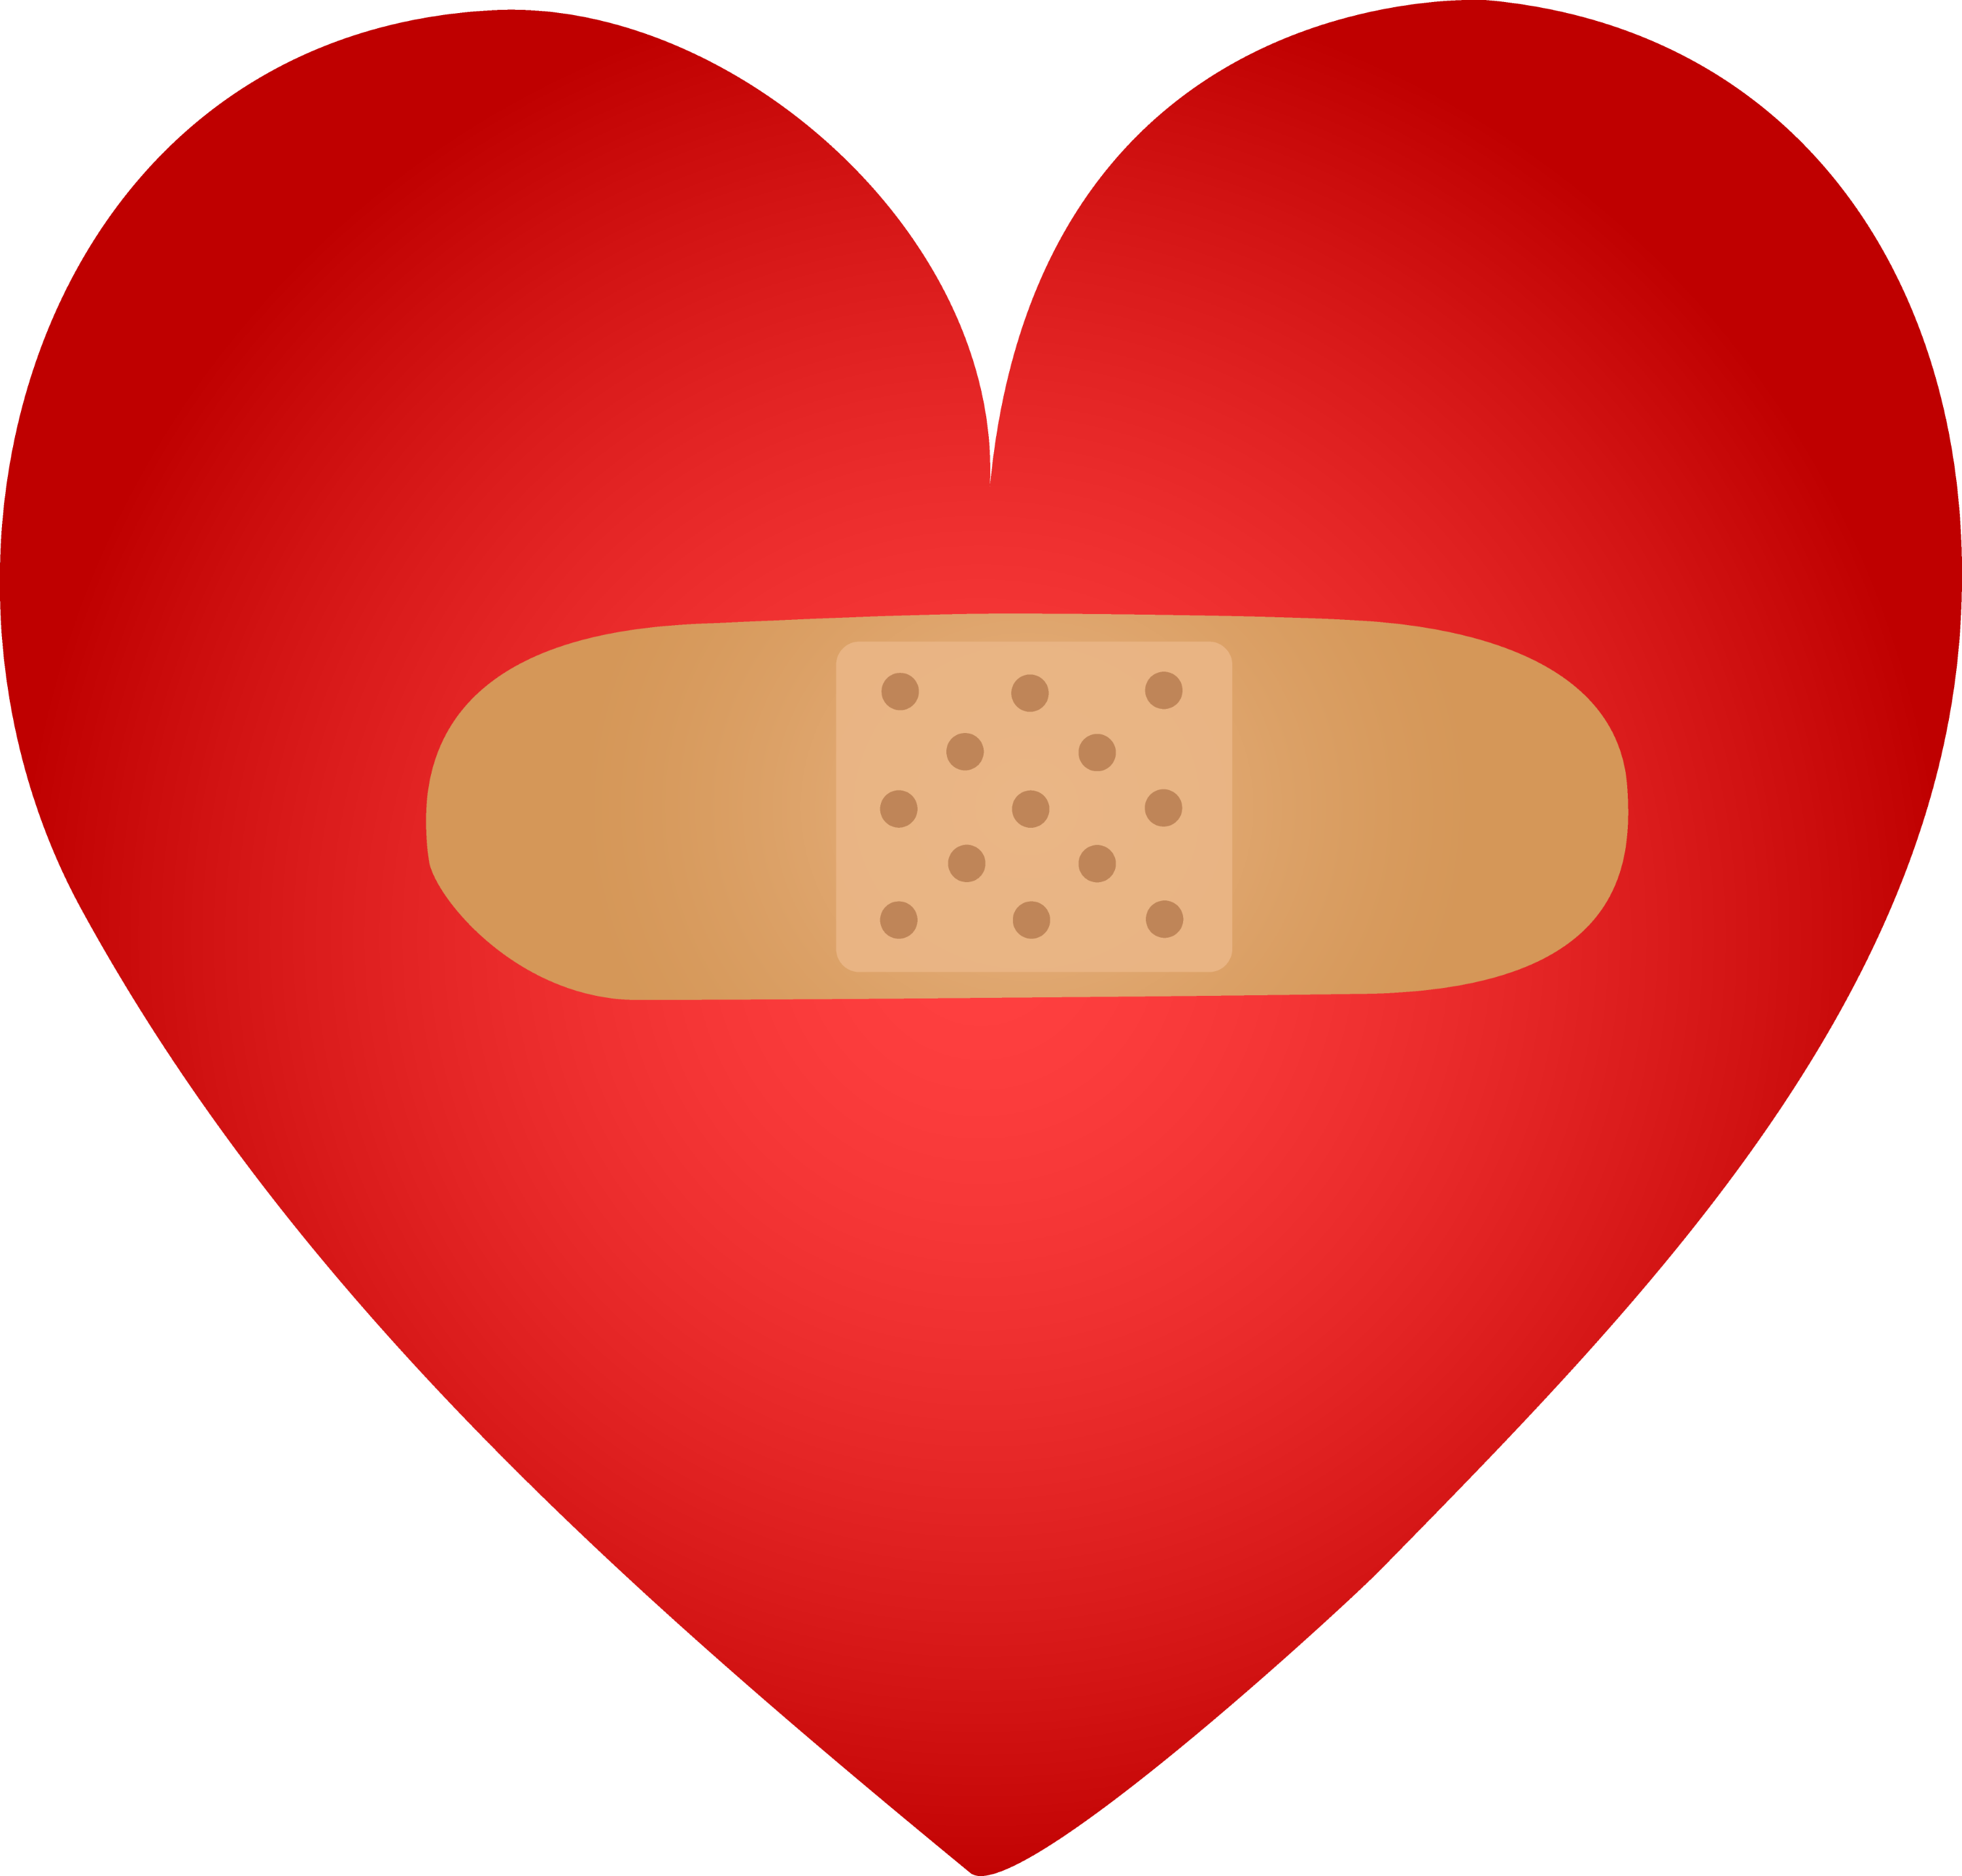 Red Heart Mended With Bandaid